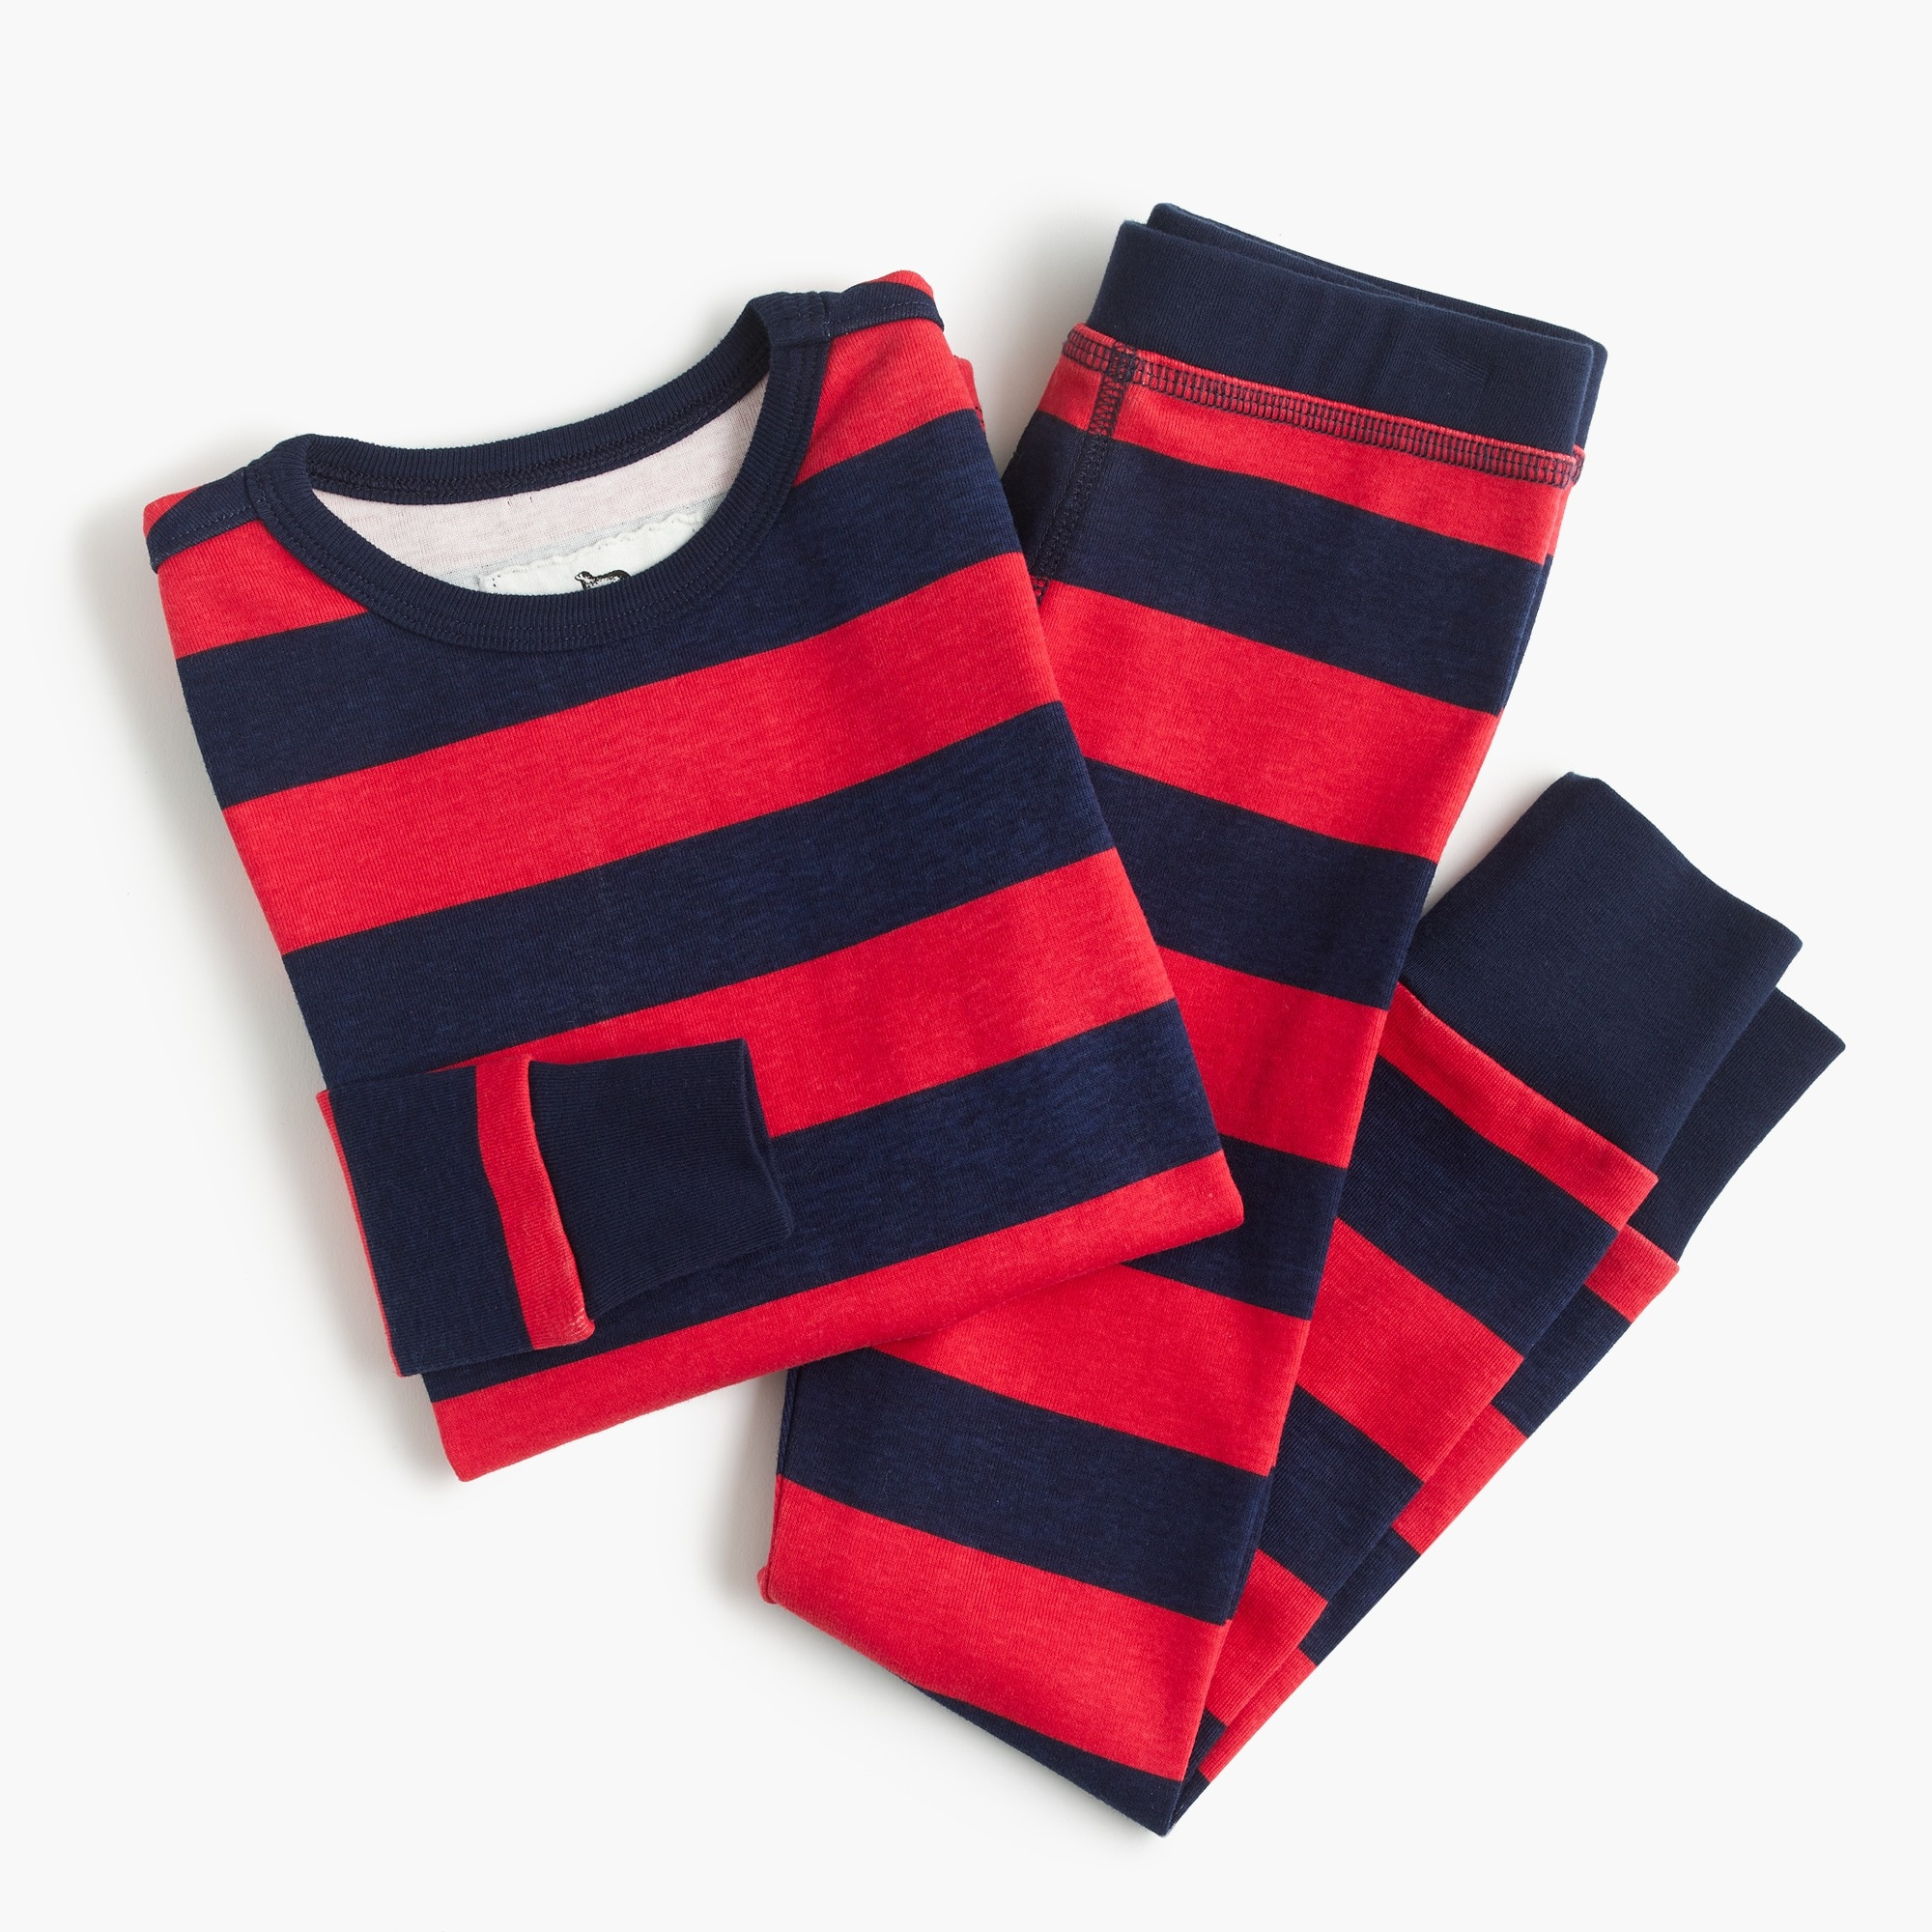 Kids' pajama set in red stripes